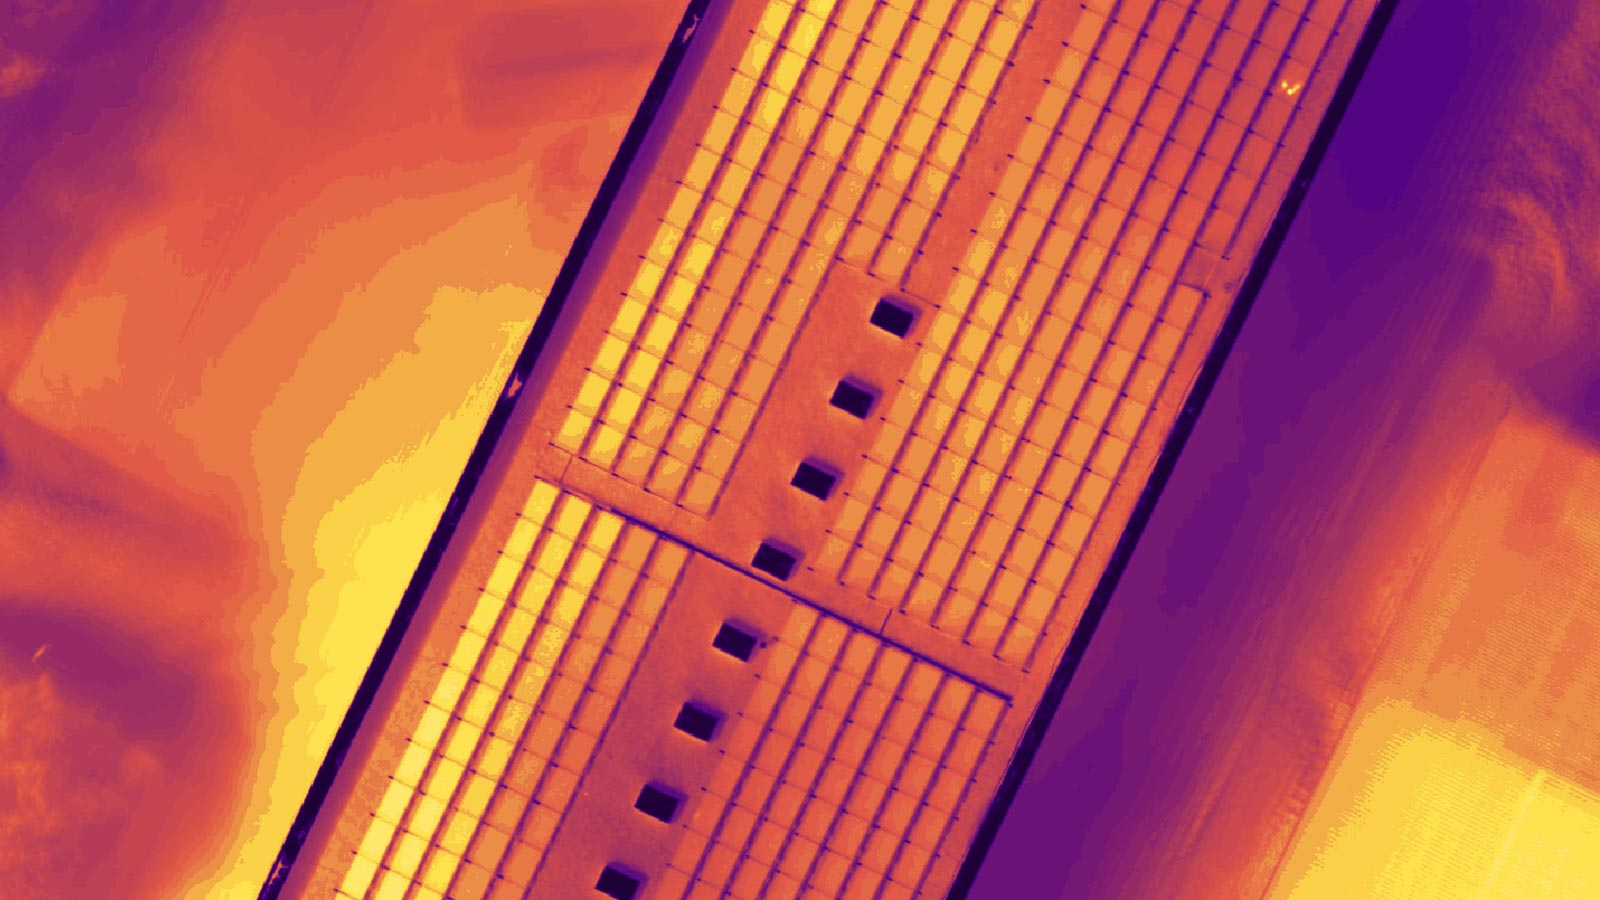 Pix4Dmapper output: thermal maps